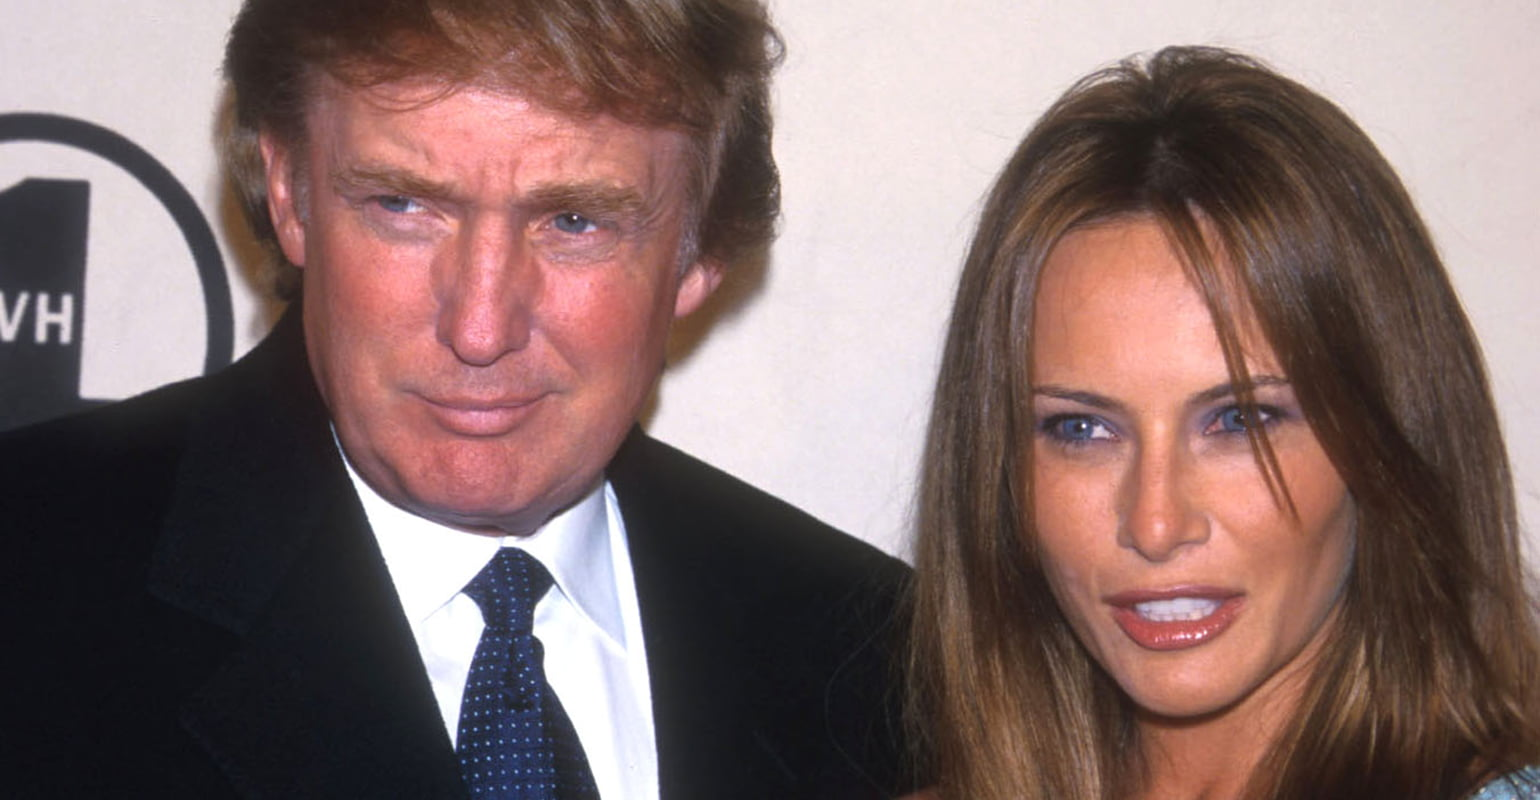 Trump Had His Own Wealth Tax in 1999 - But the Math Was Wrong